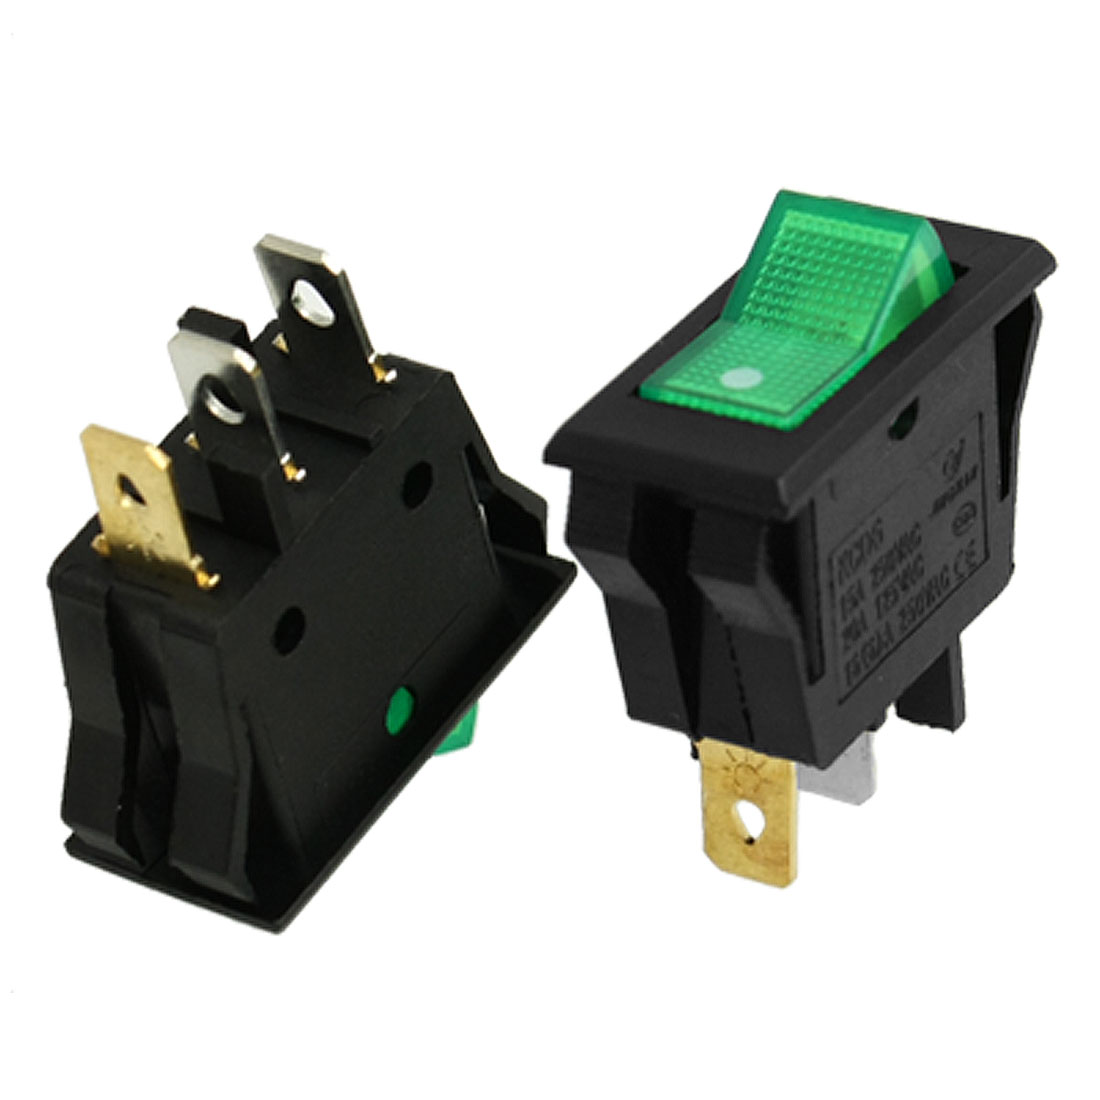 Unique Bargains AC 15A/250V 20A/125V Green Light ON-OFF 2 Position SPST Boat Rocker Switch 10pcs